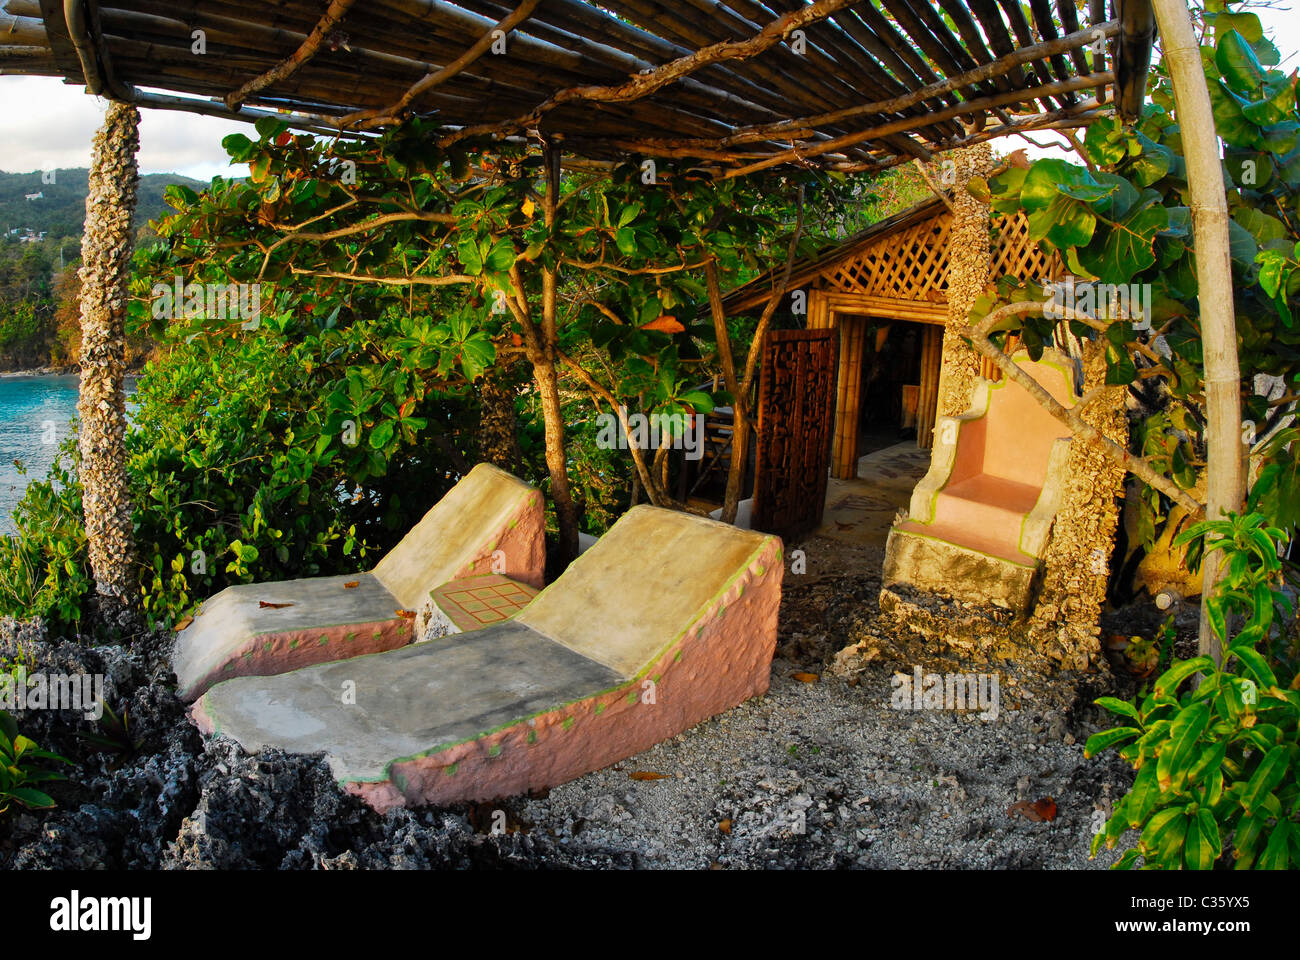 Fig Tree House Hut At Great Huts An Eco Resort Village Of